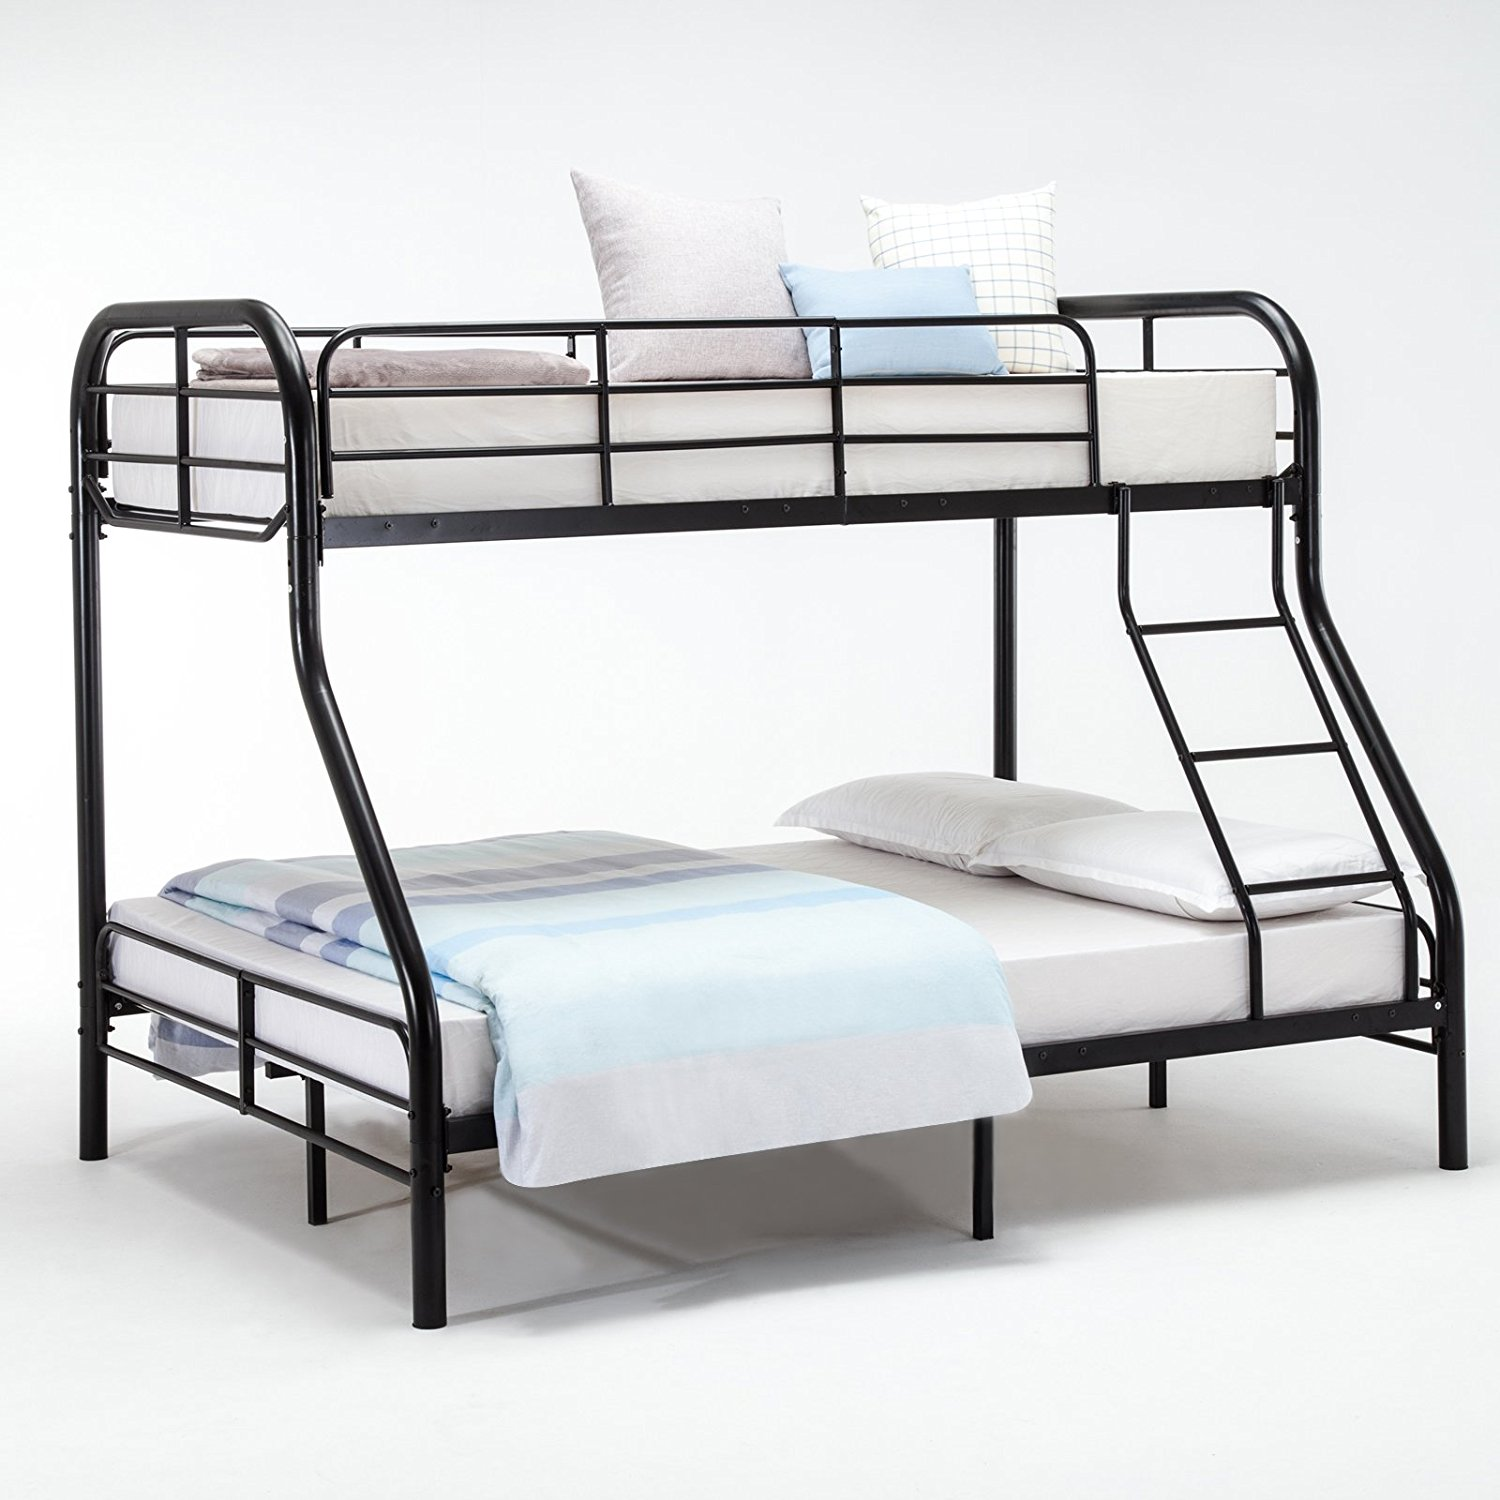 Uenjoy Metal Twin over Full Bunk Beds Ladder Kids Teens Adult Dorm Bedroom Furniture,Black